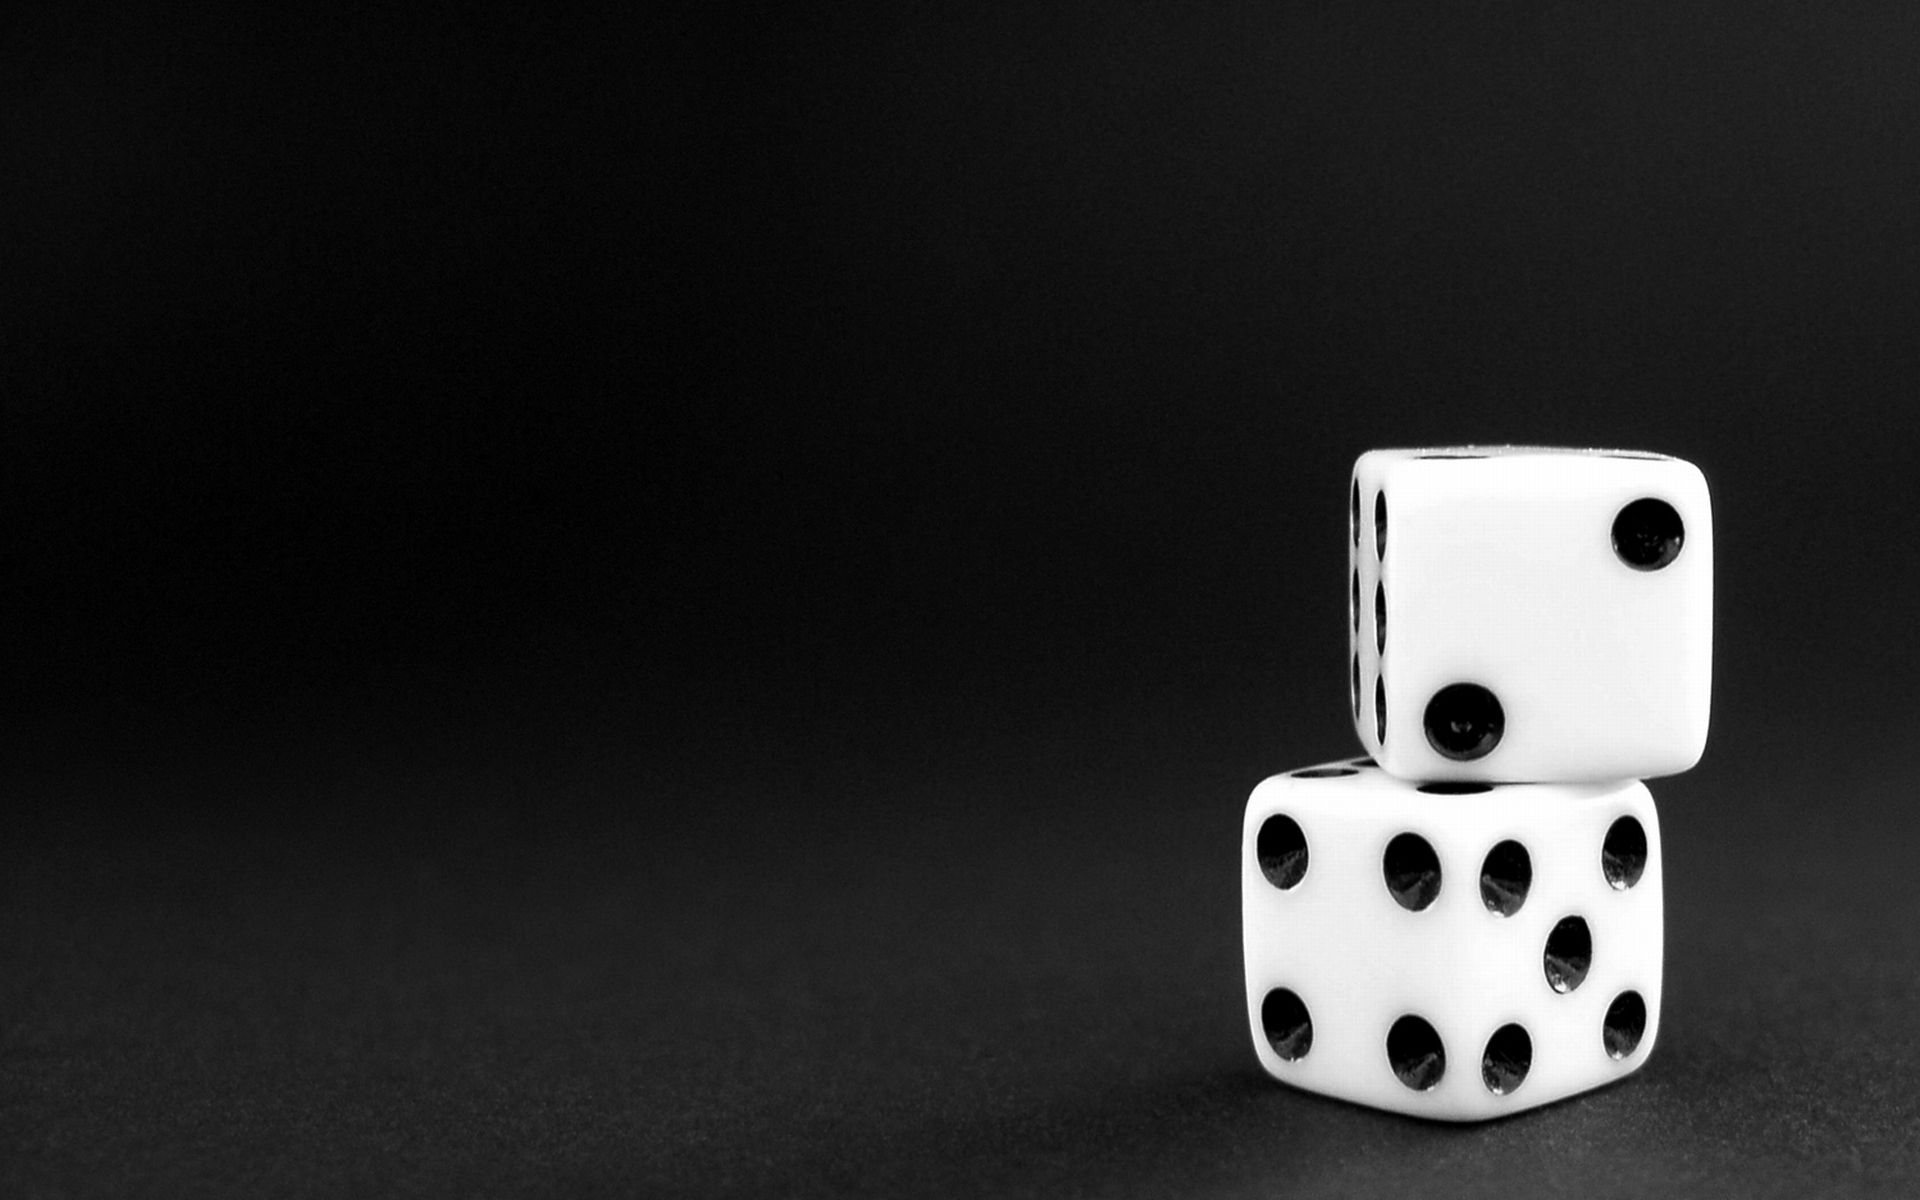 dice images free